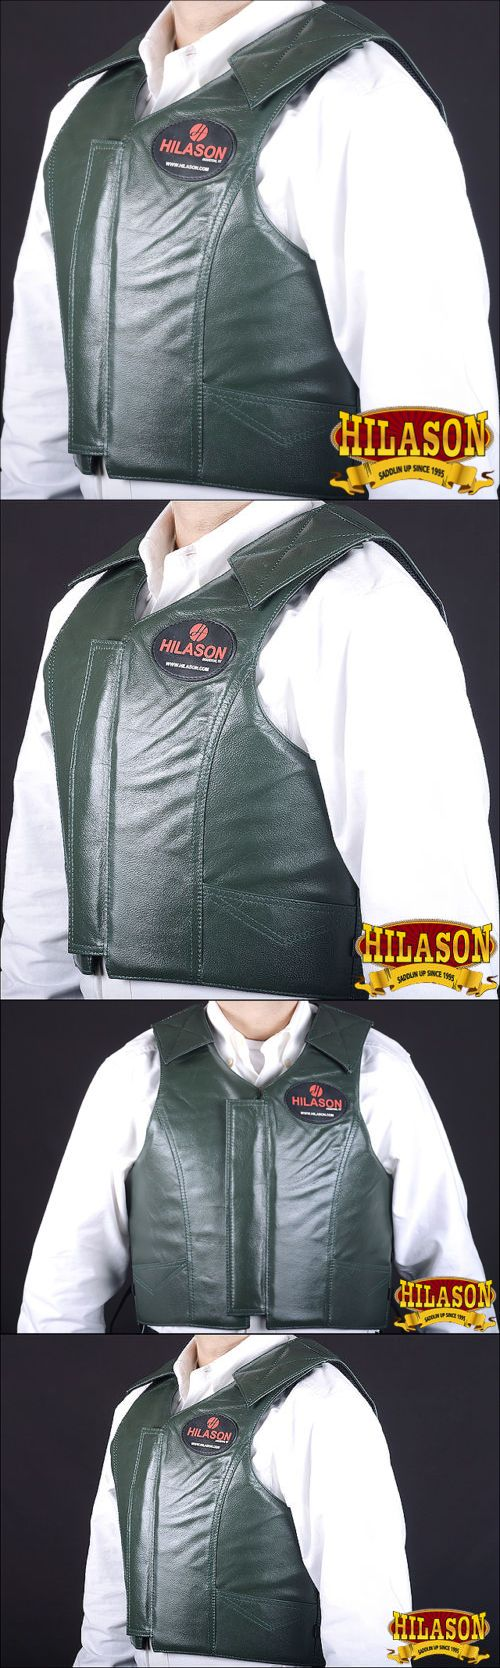 Other Protective Gear 87446: Pv801-F Hilason Leather Bareback Pro Rodeo Horse Riding Protective Vest - Medium -> BUY IT NOW ONLY: $164.99 on eBay!